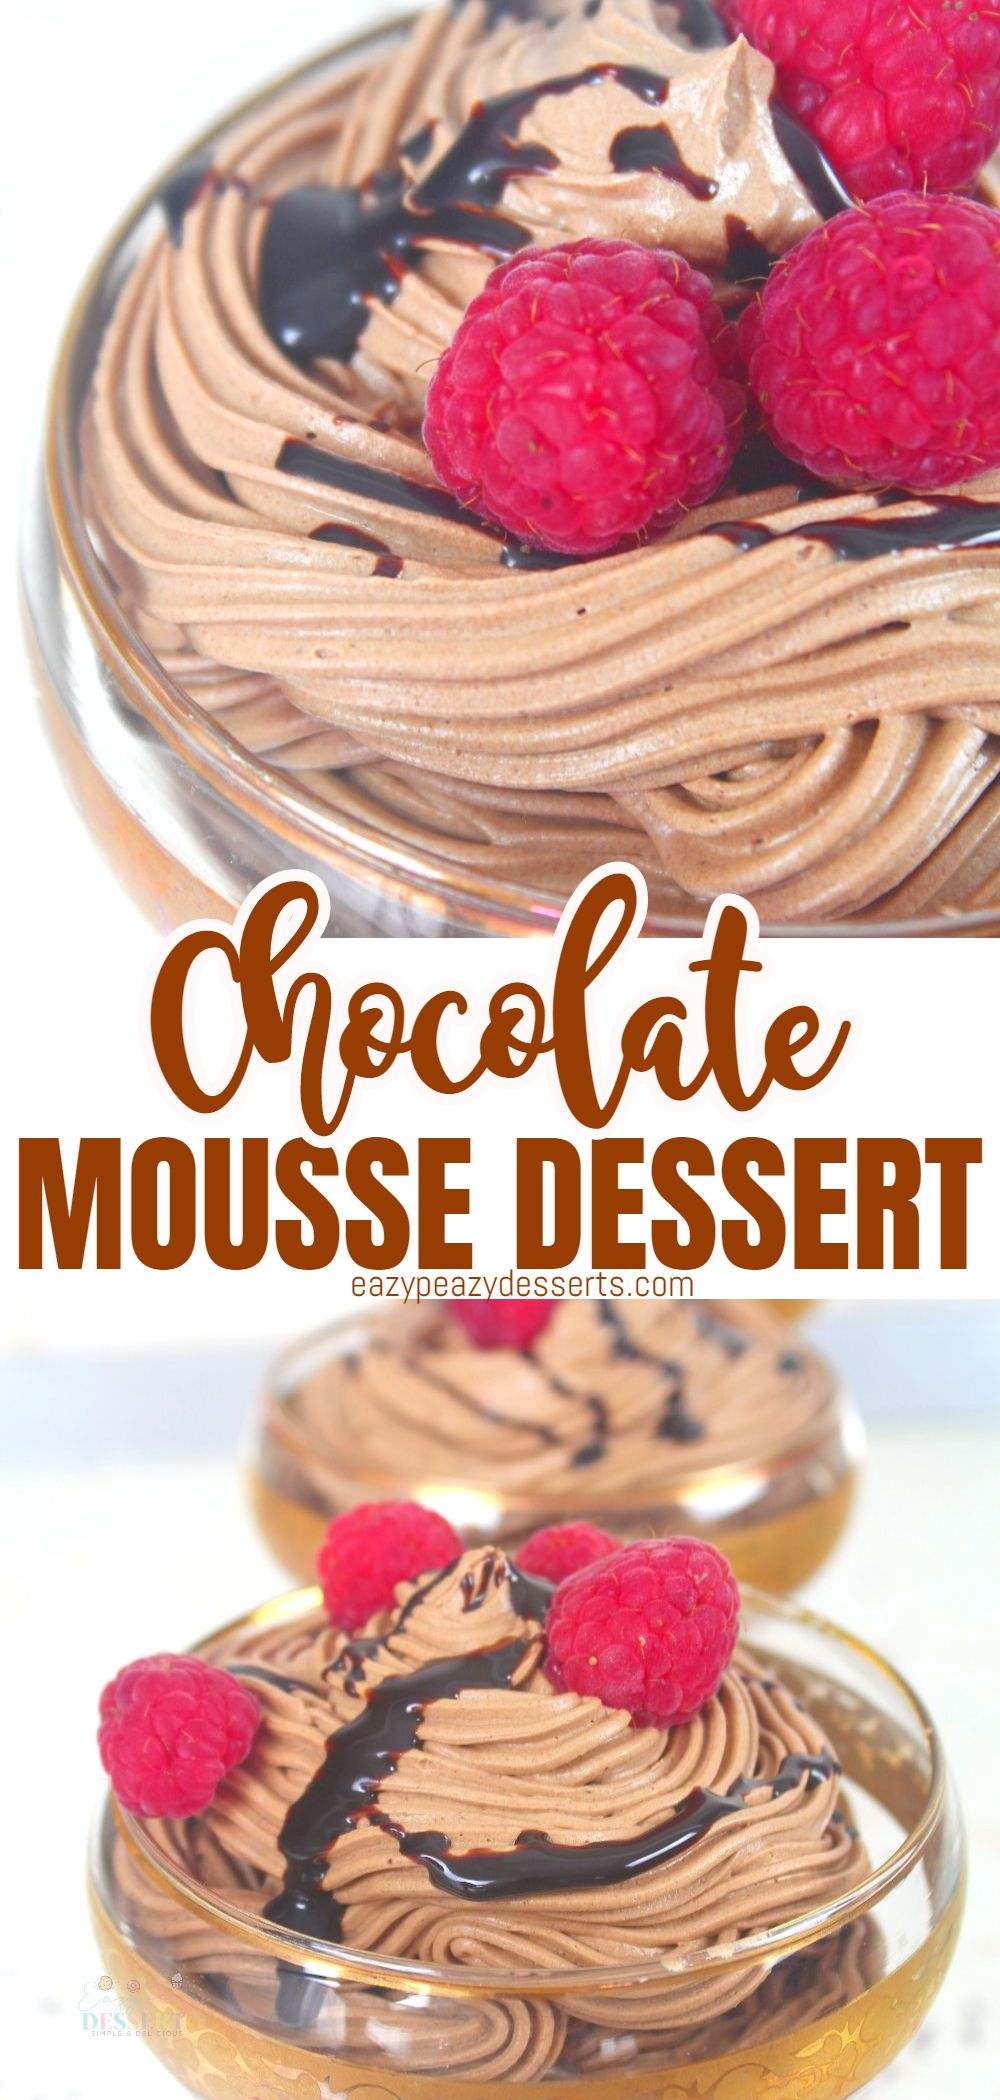 This chocolate mousse is a light, airy dessert that looks very sophisticated, but is really pretty quick and easy to make. Here I'll show you how to make this super-duper-easy chocolate mousse recipe in no-time, really! via @eazypeazydesserts